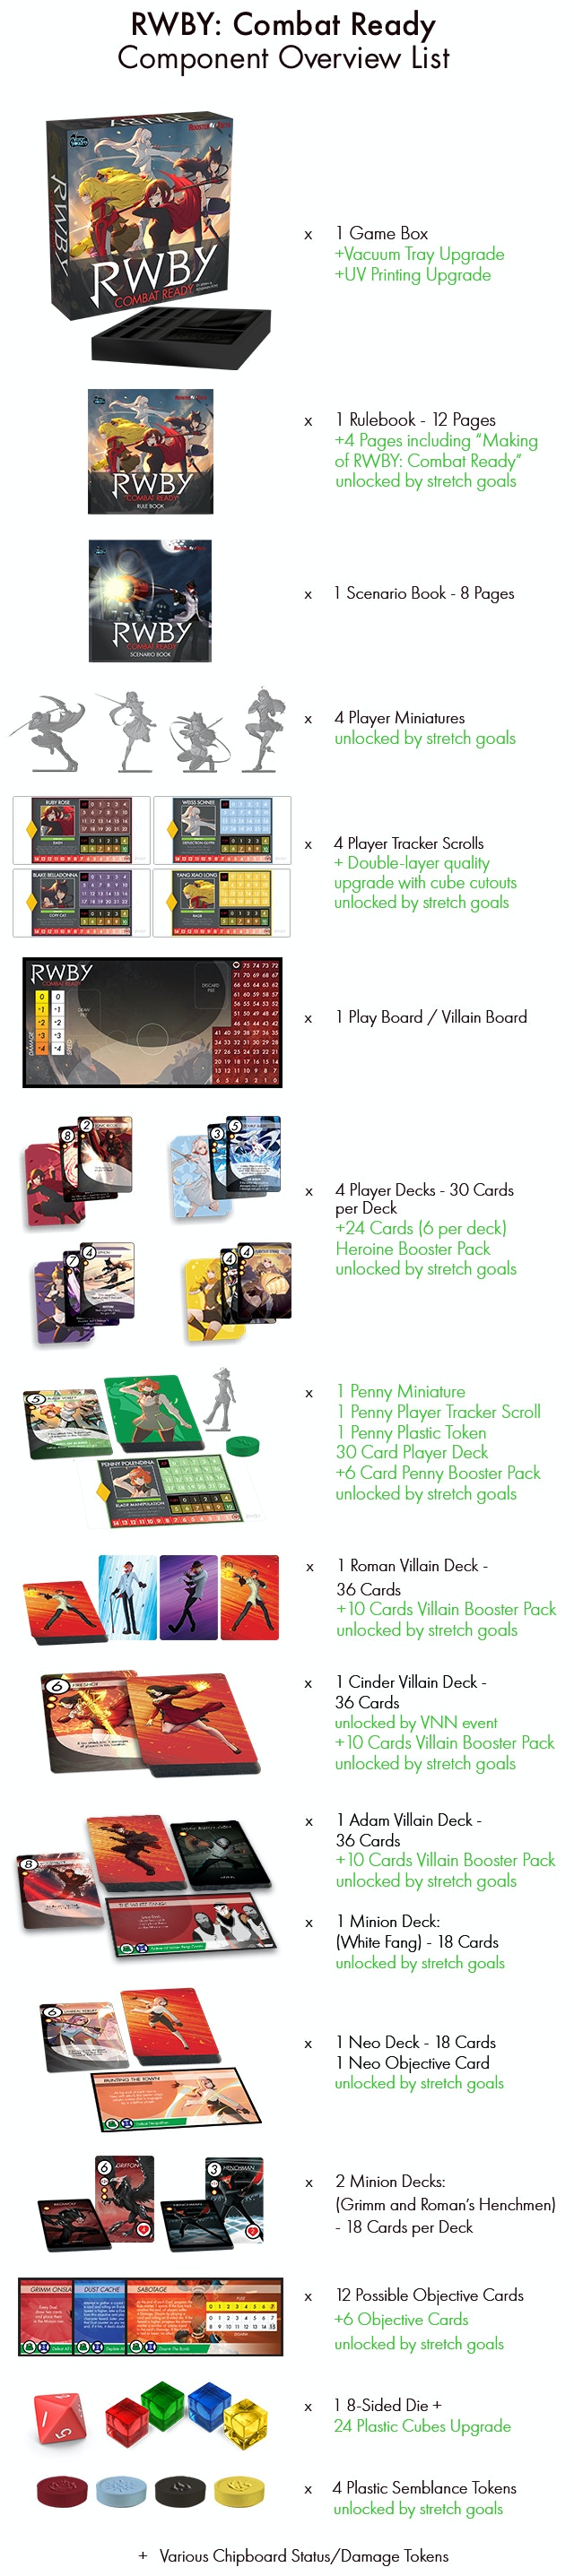 RWBY: Combat Ready by Rooster Teeth — Kickstarter